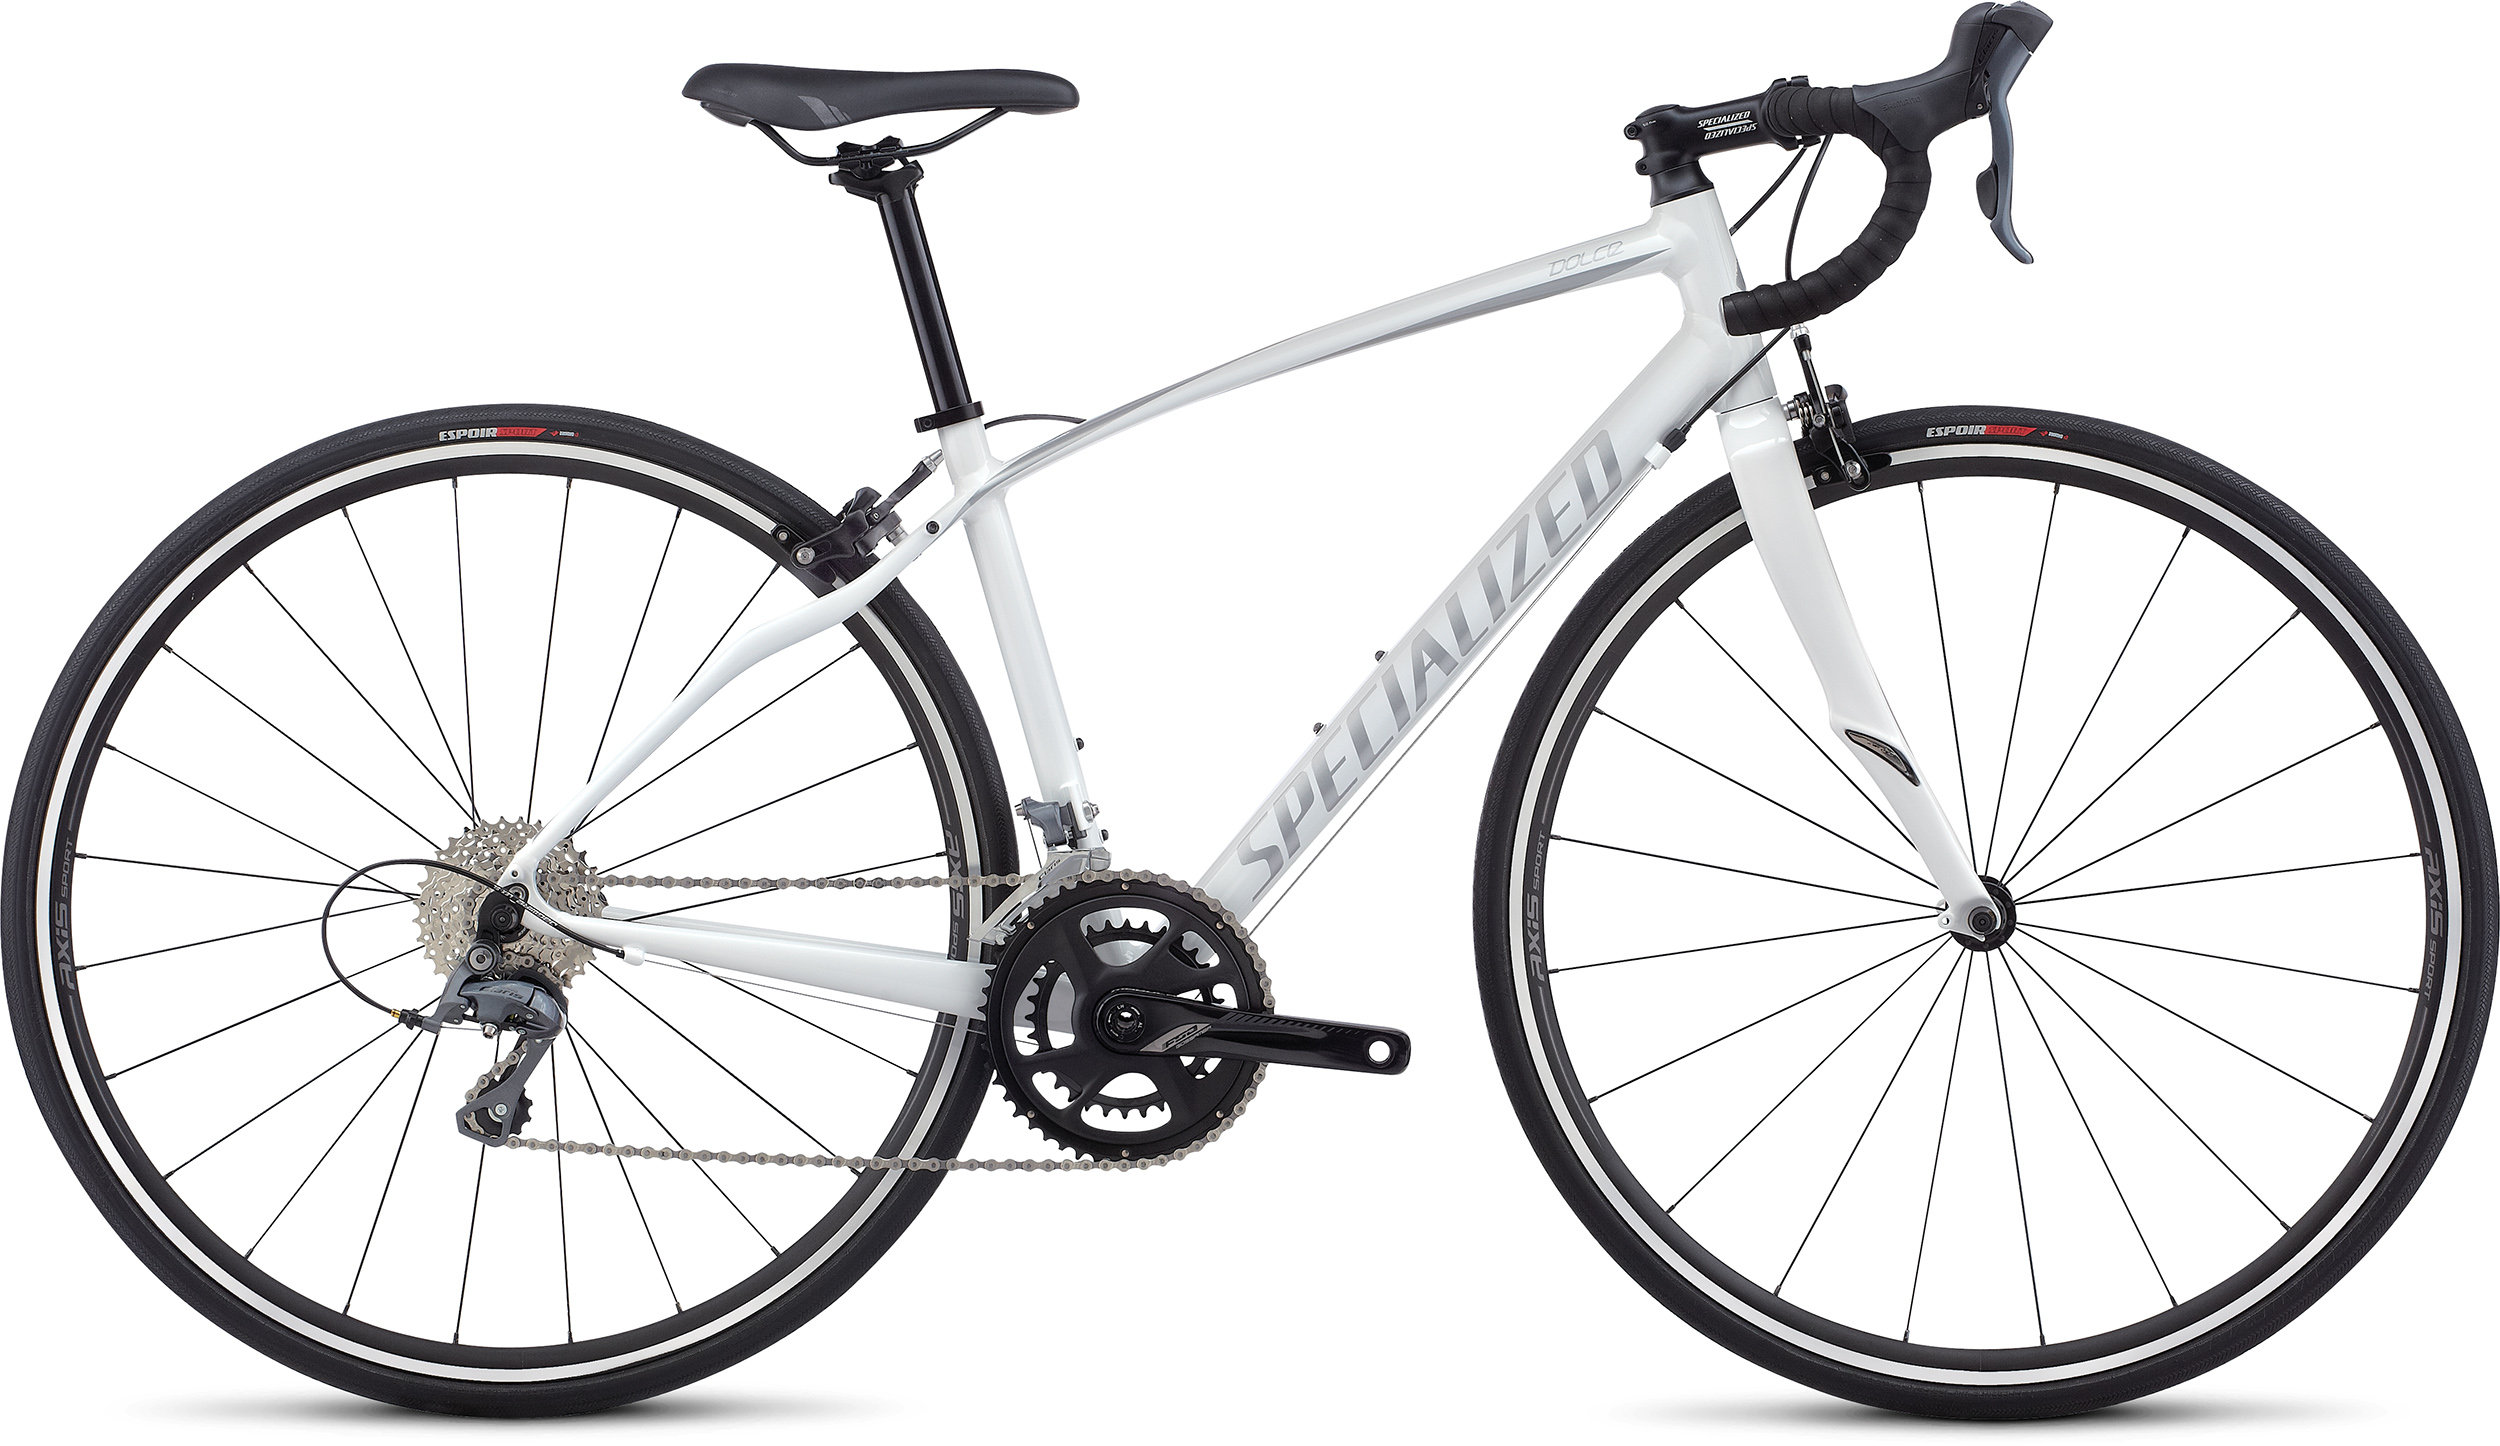 SPECIALIZED DOLCE WHT/FLKSIL 44 - Bike Zone